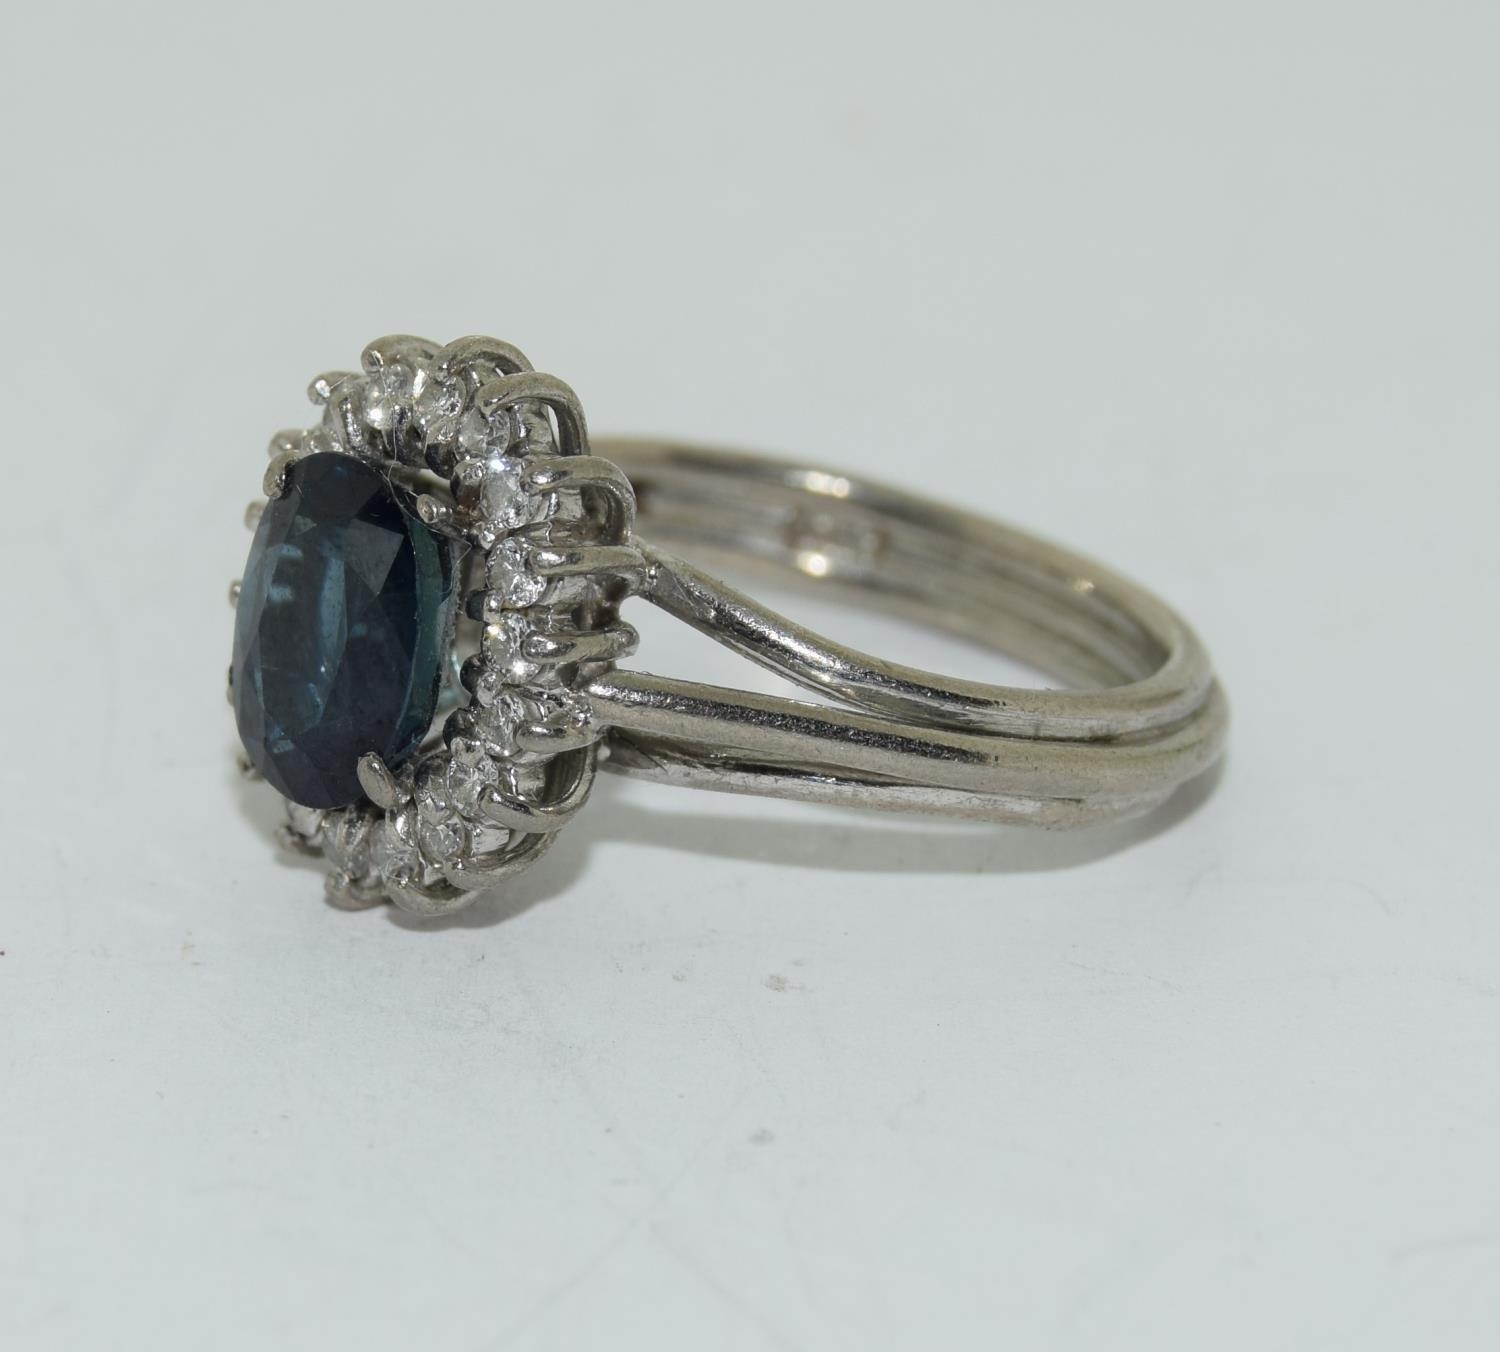 An 18ct white gold ladies diamond and sapphire ring, Size L - Image 4 of 6